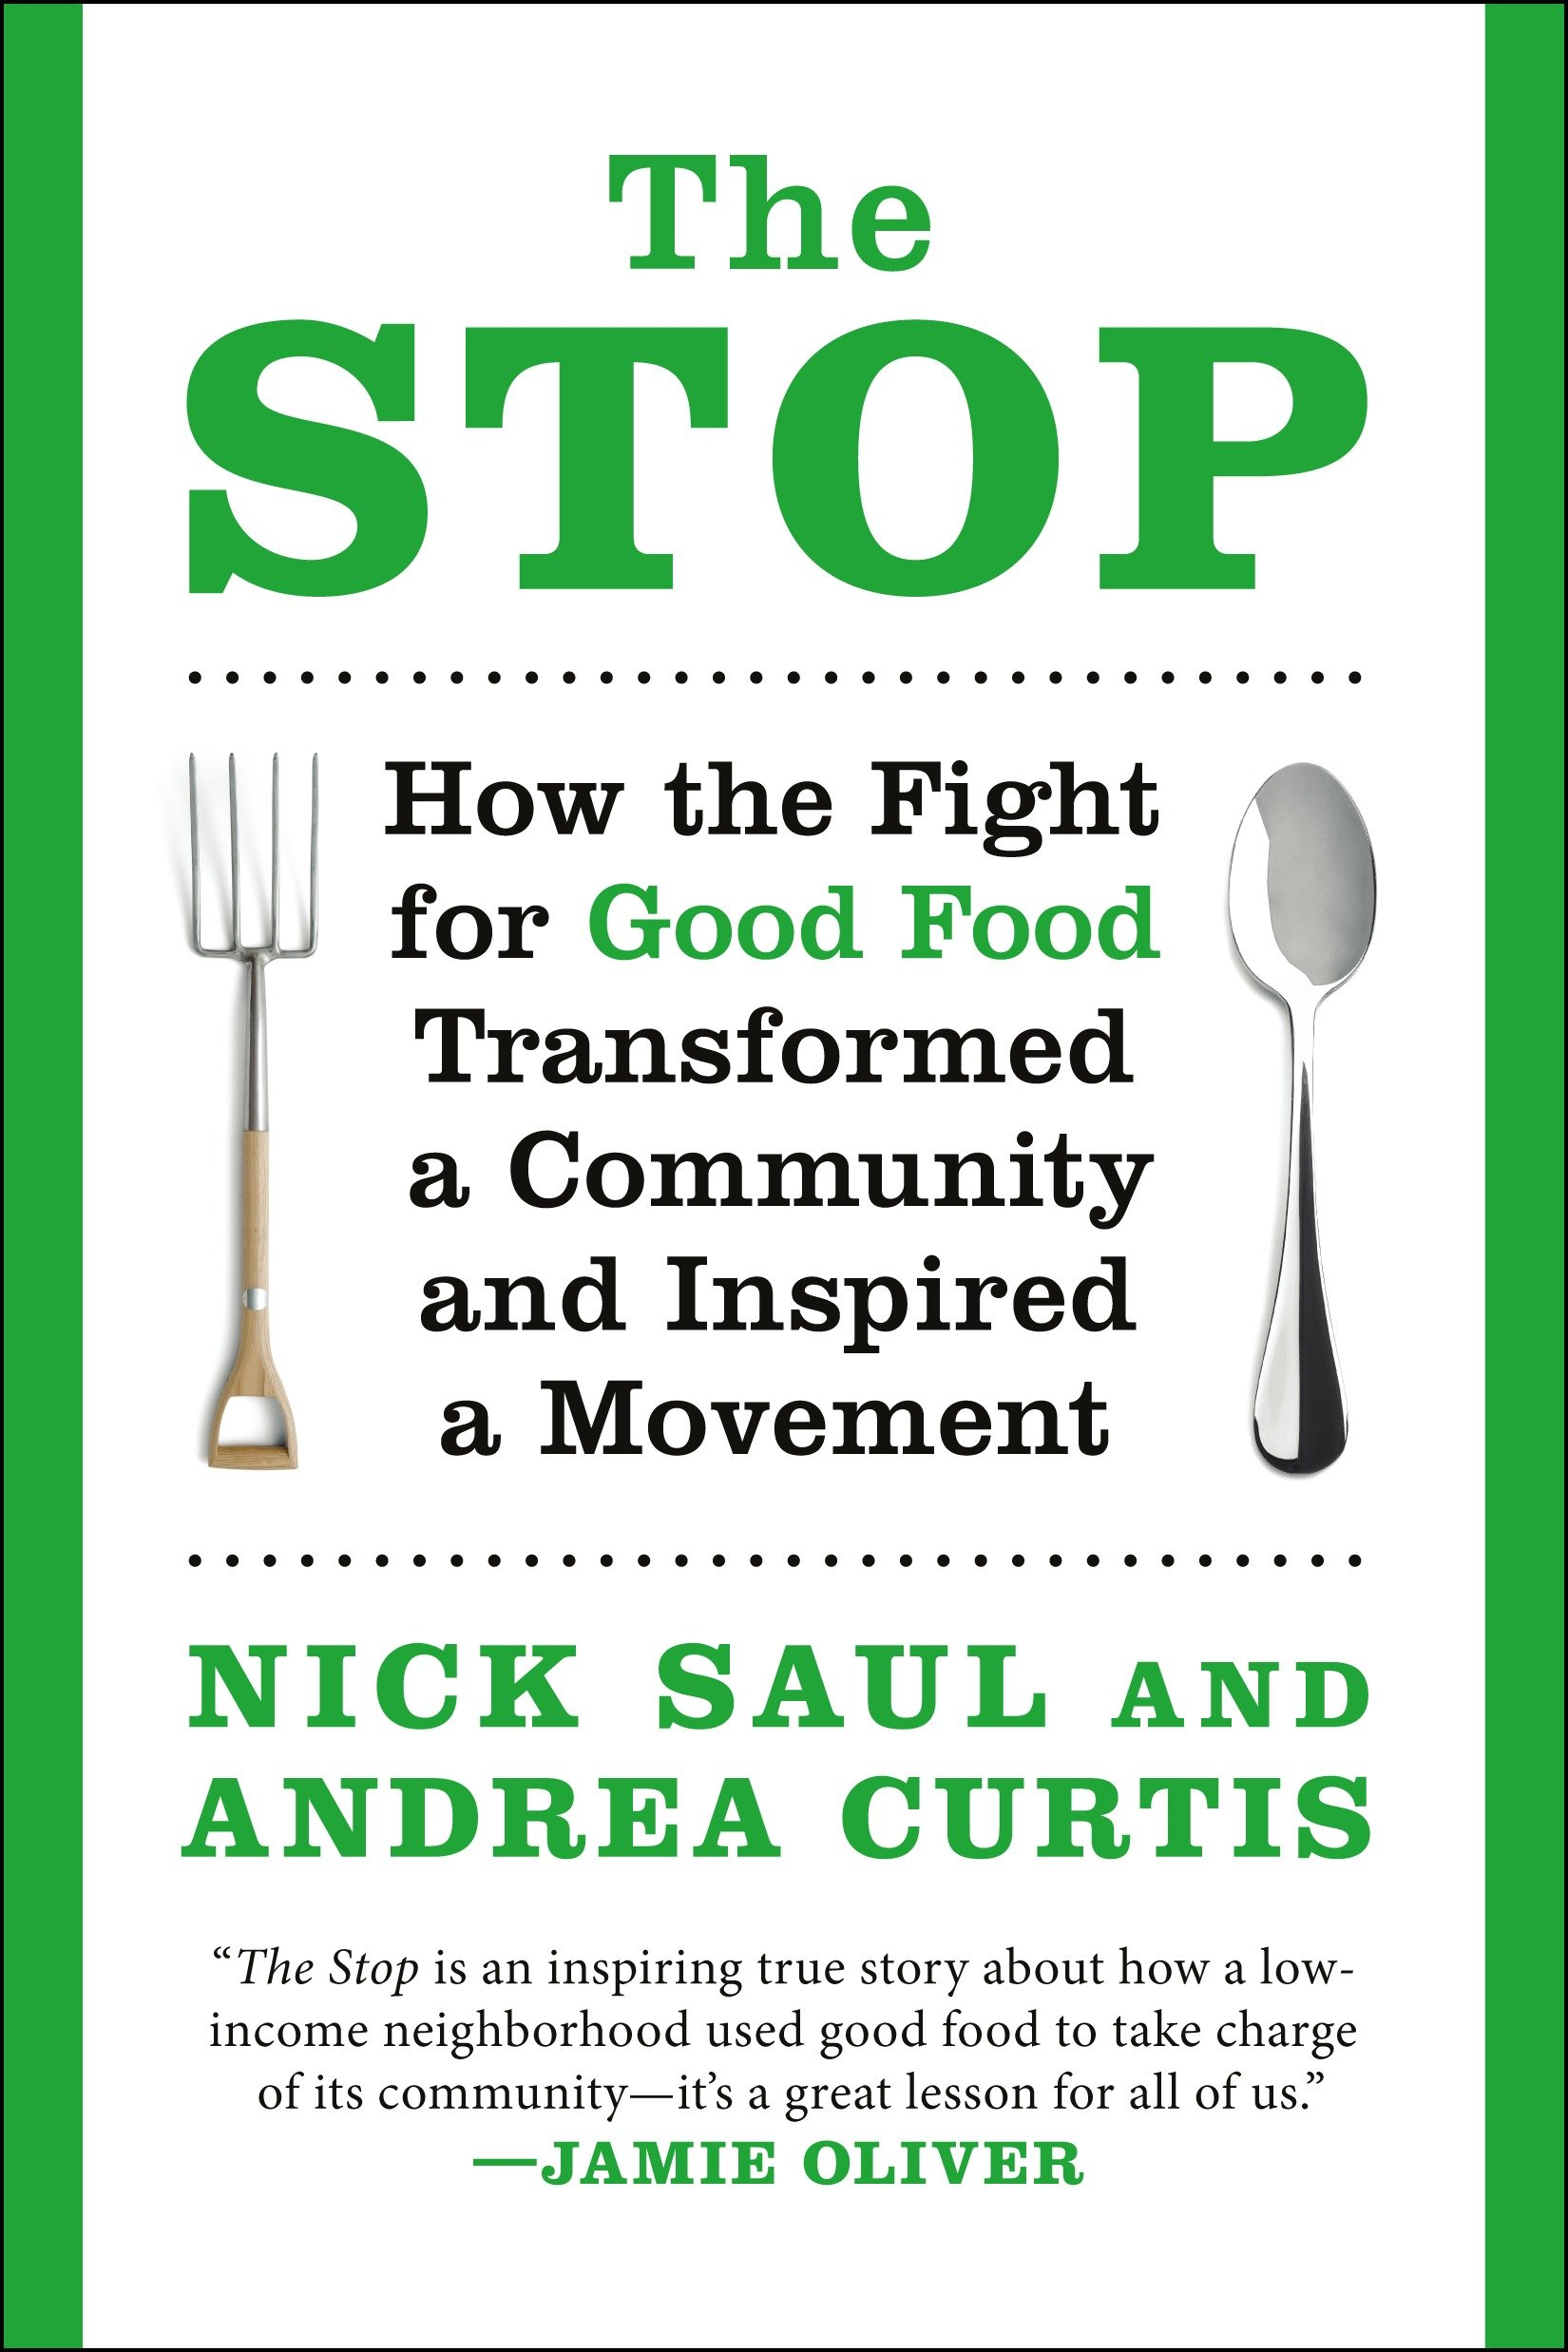 The Stop How the Fight for Good Food Transformed a Community and Inspired a Movement